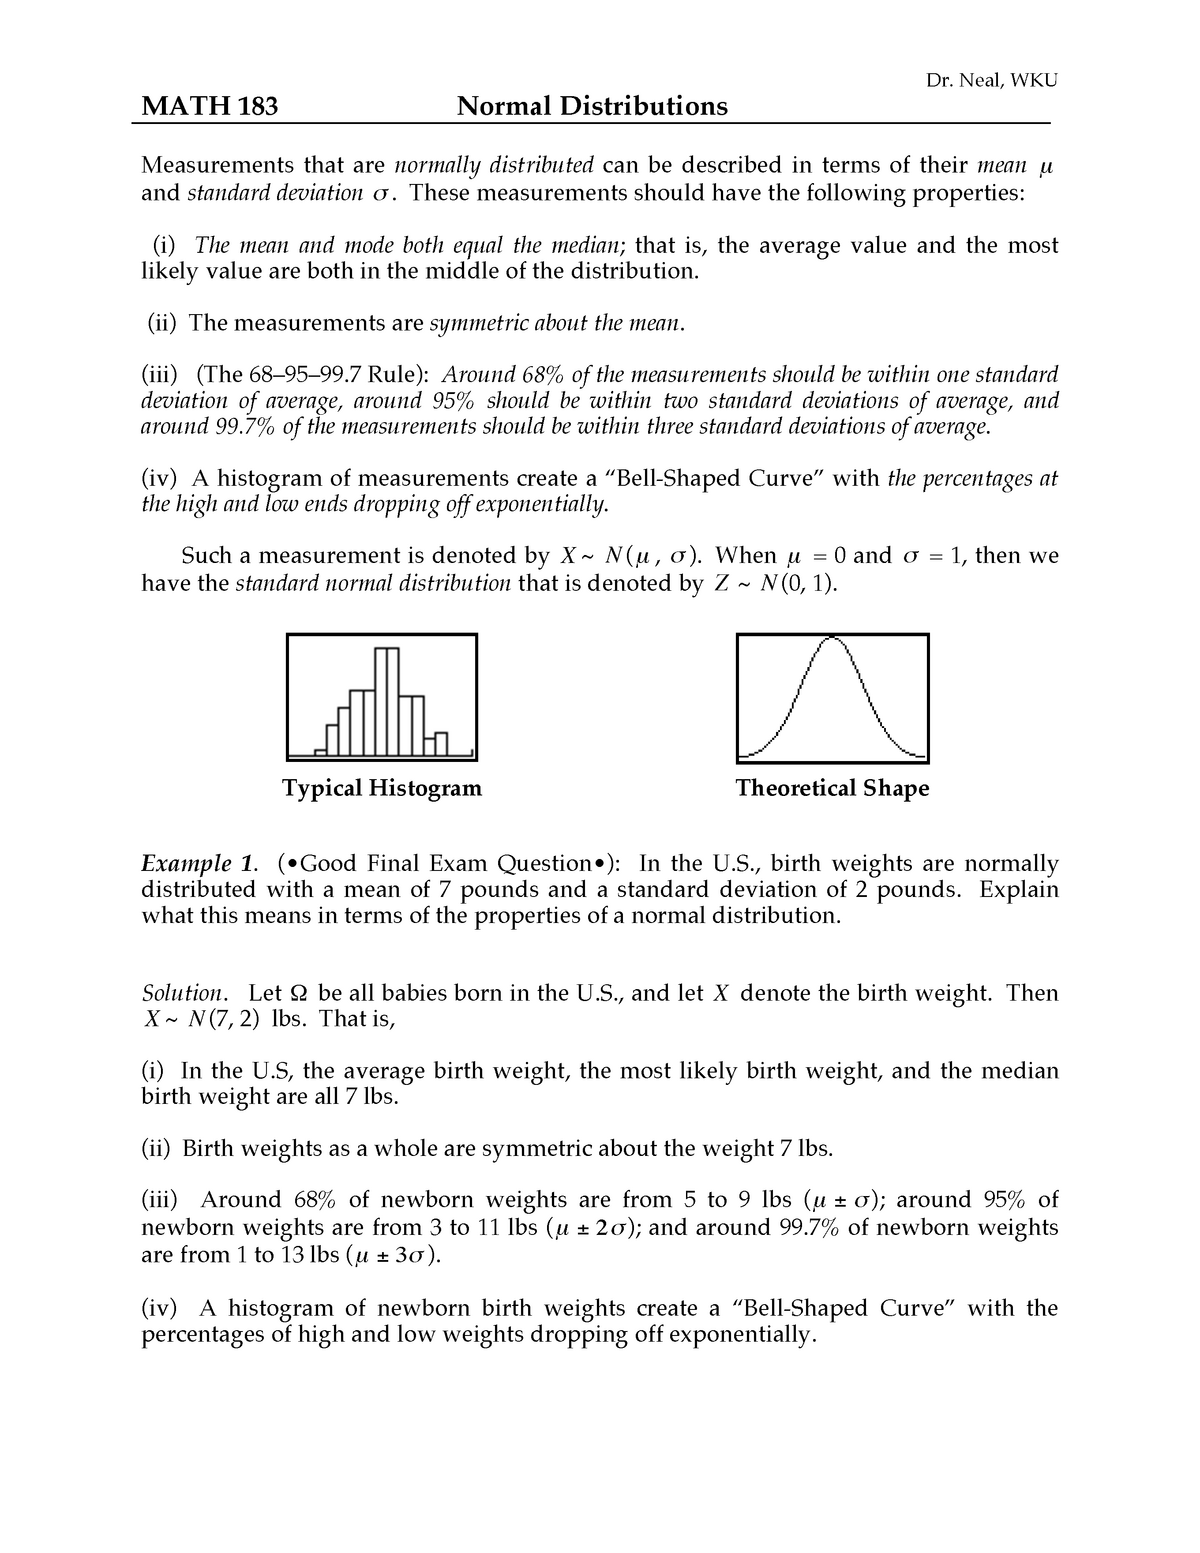 Normal - Lecture notes 7 - MATH 183: Introductory Statistics